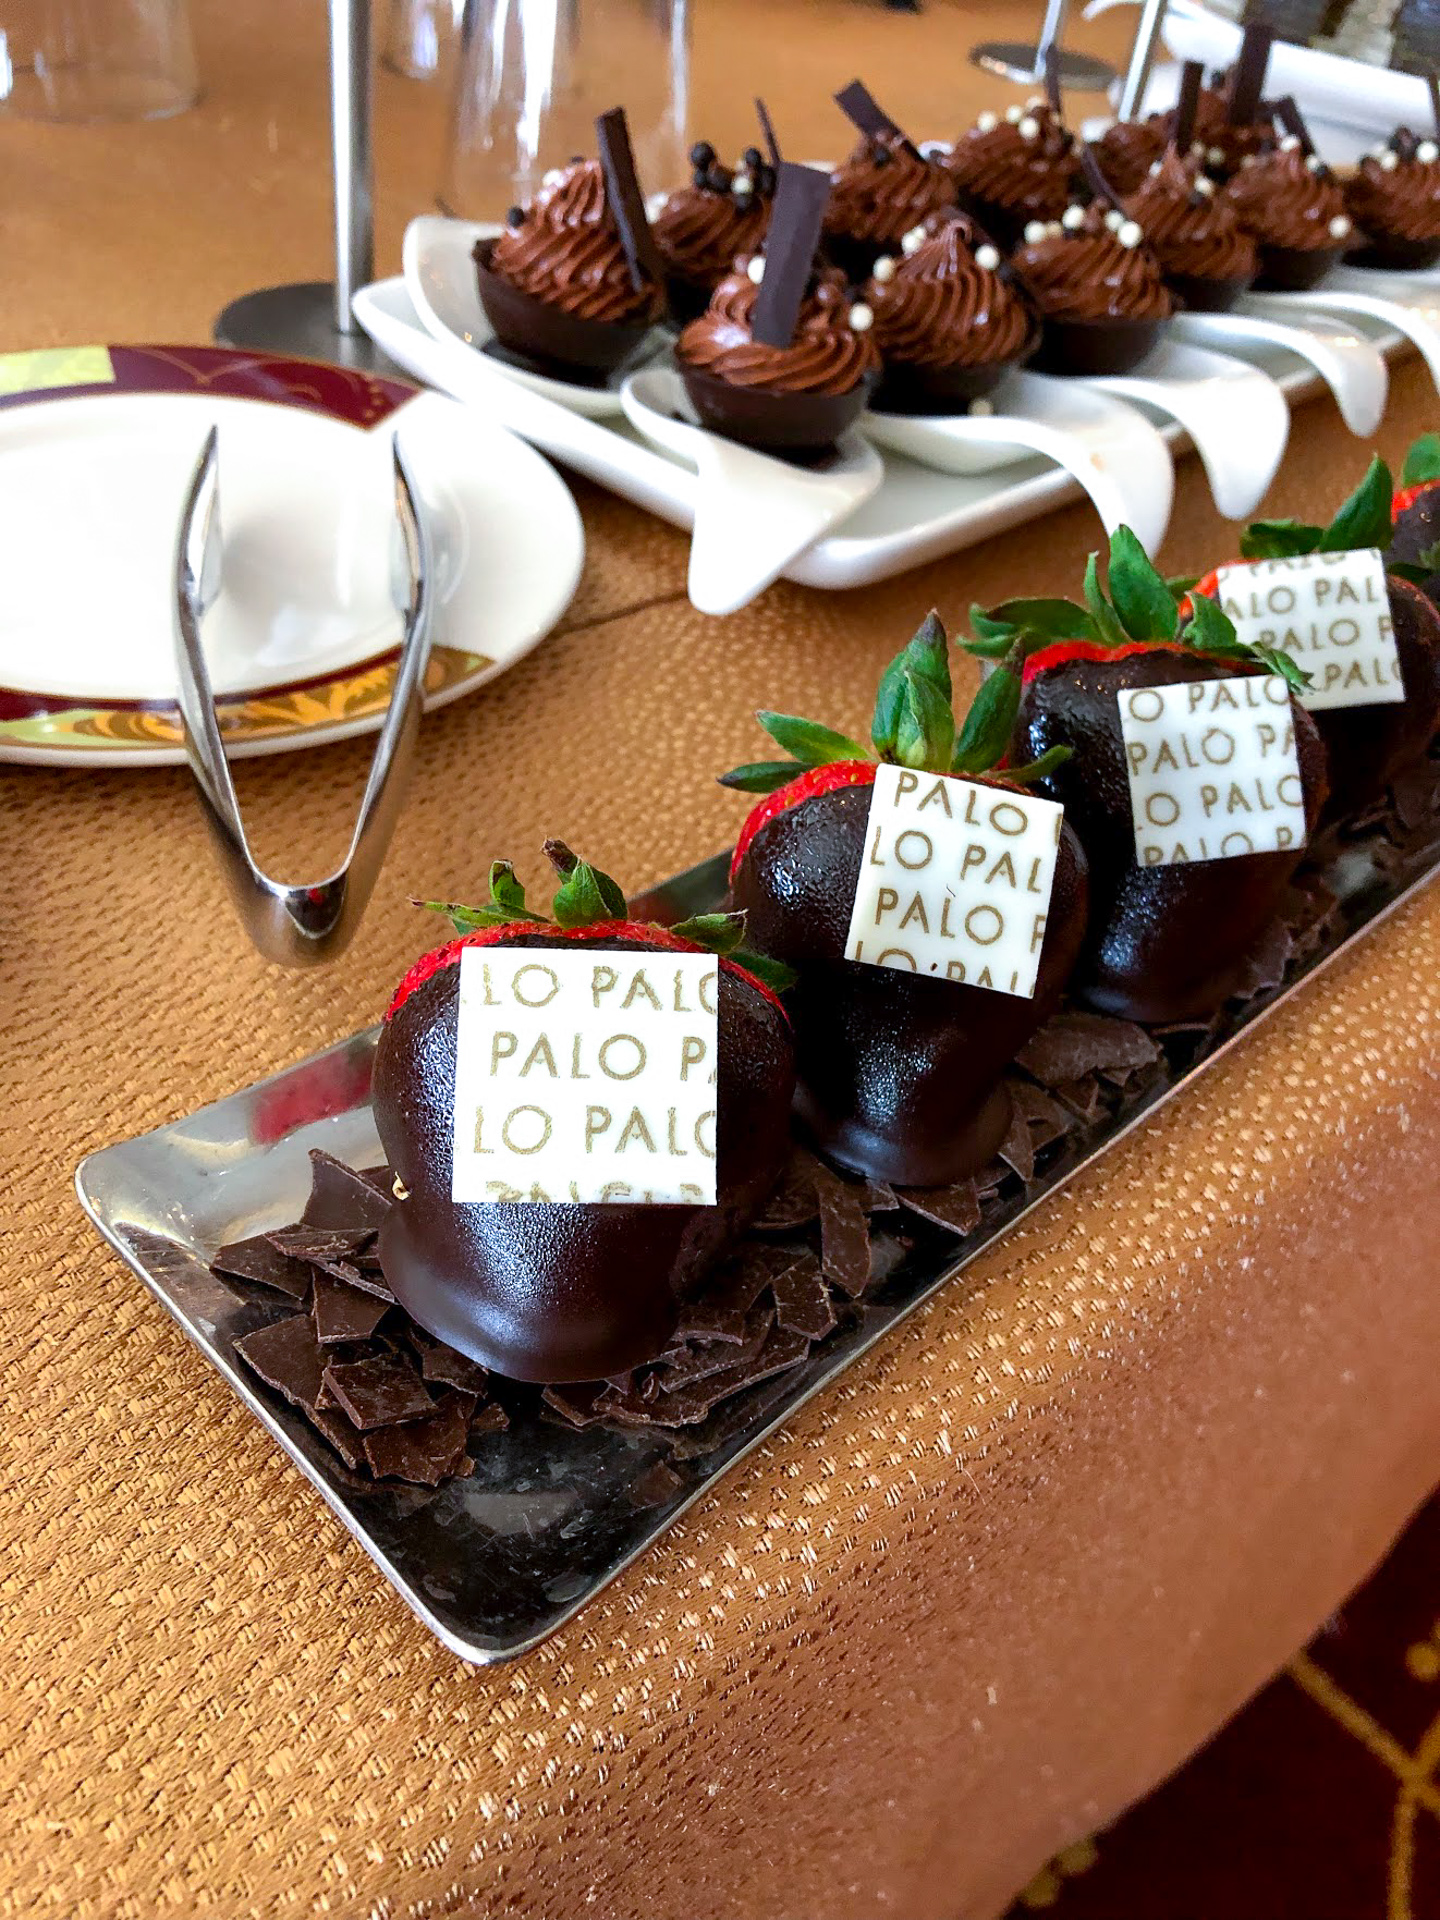 Desserts at the Palo Brunch buffet on the Disney Dream